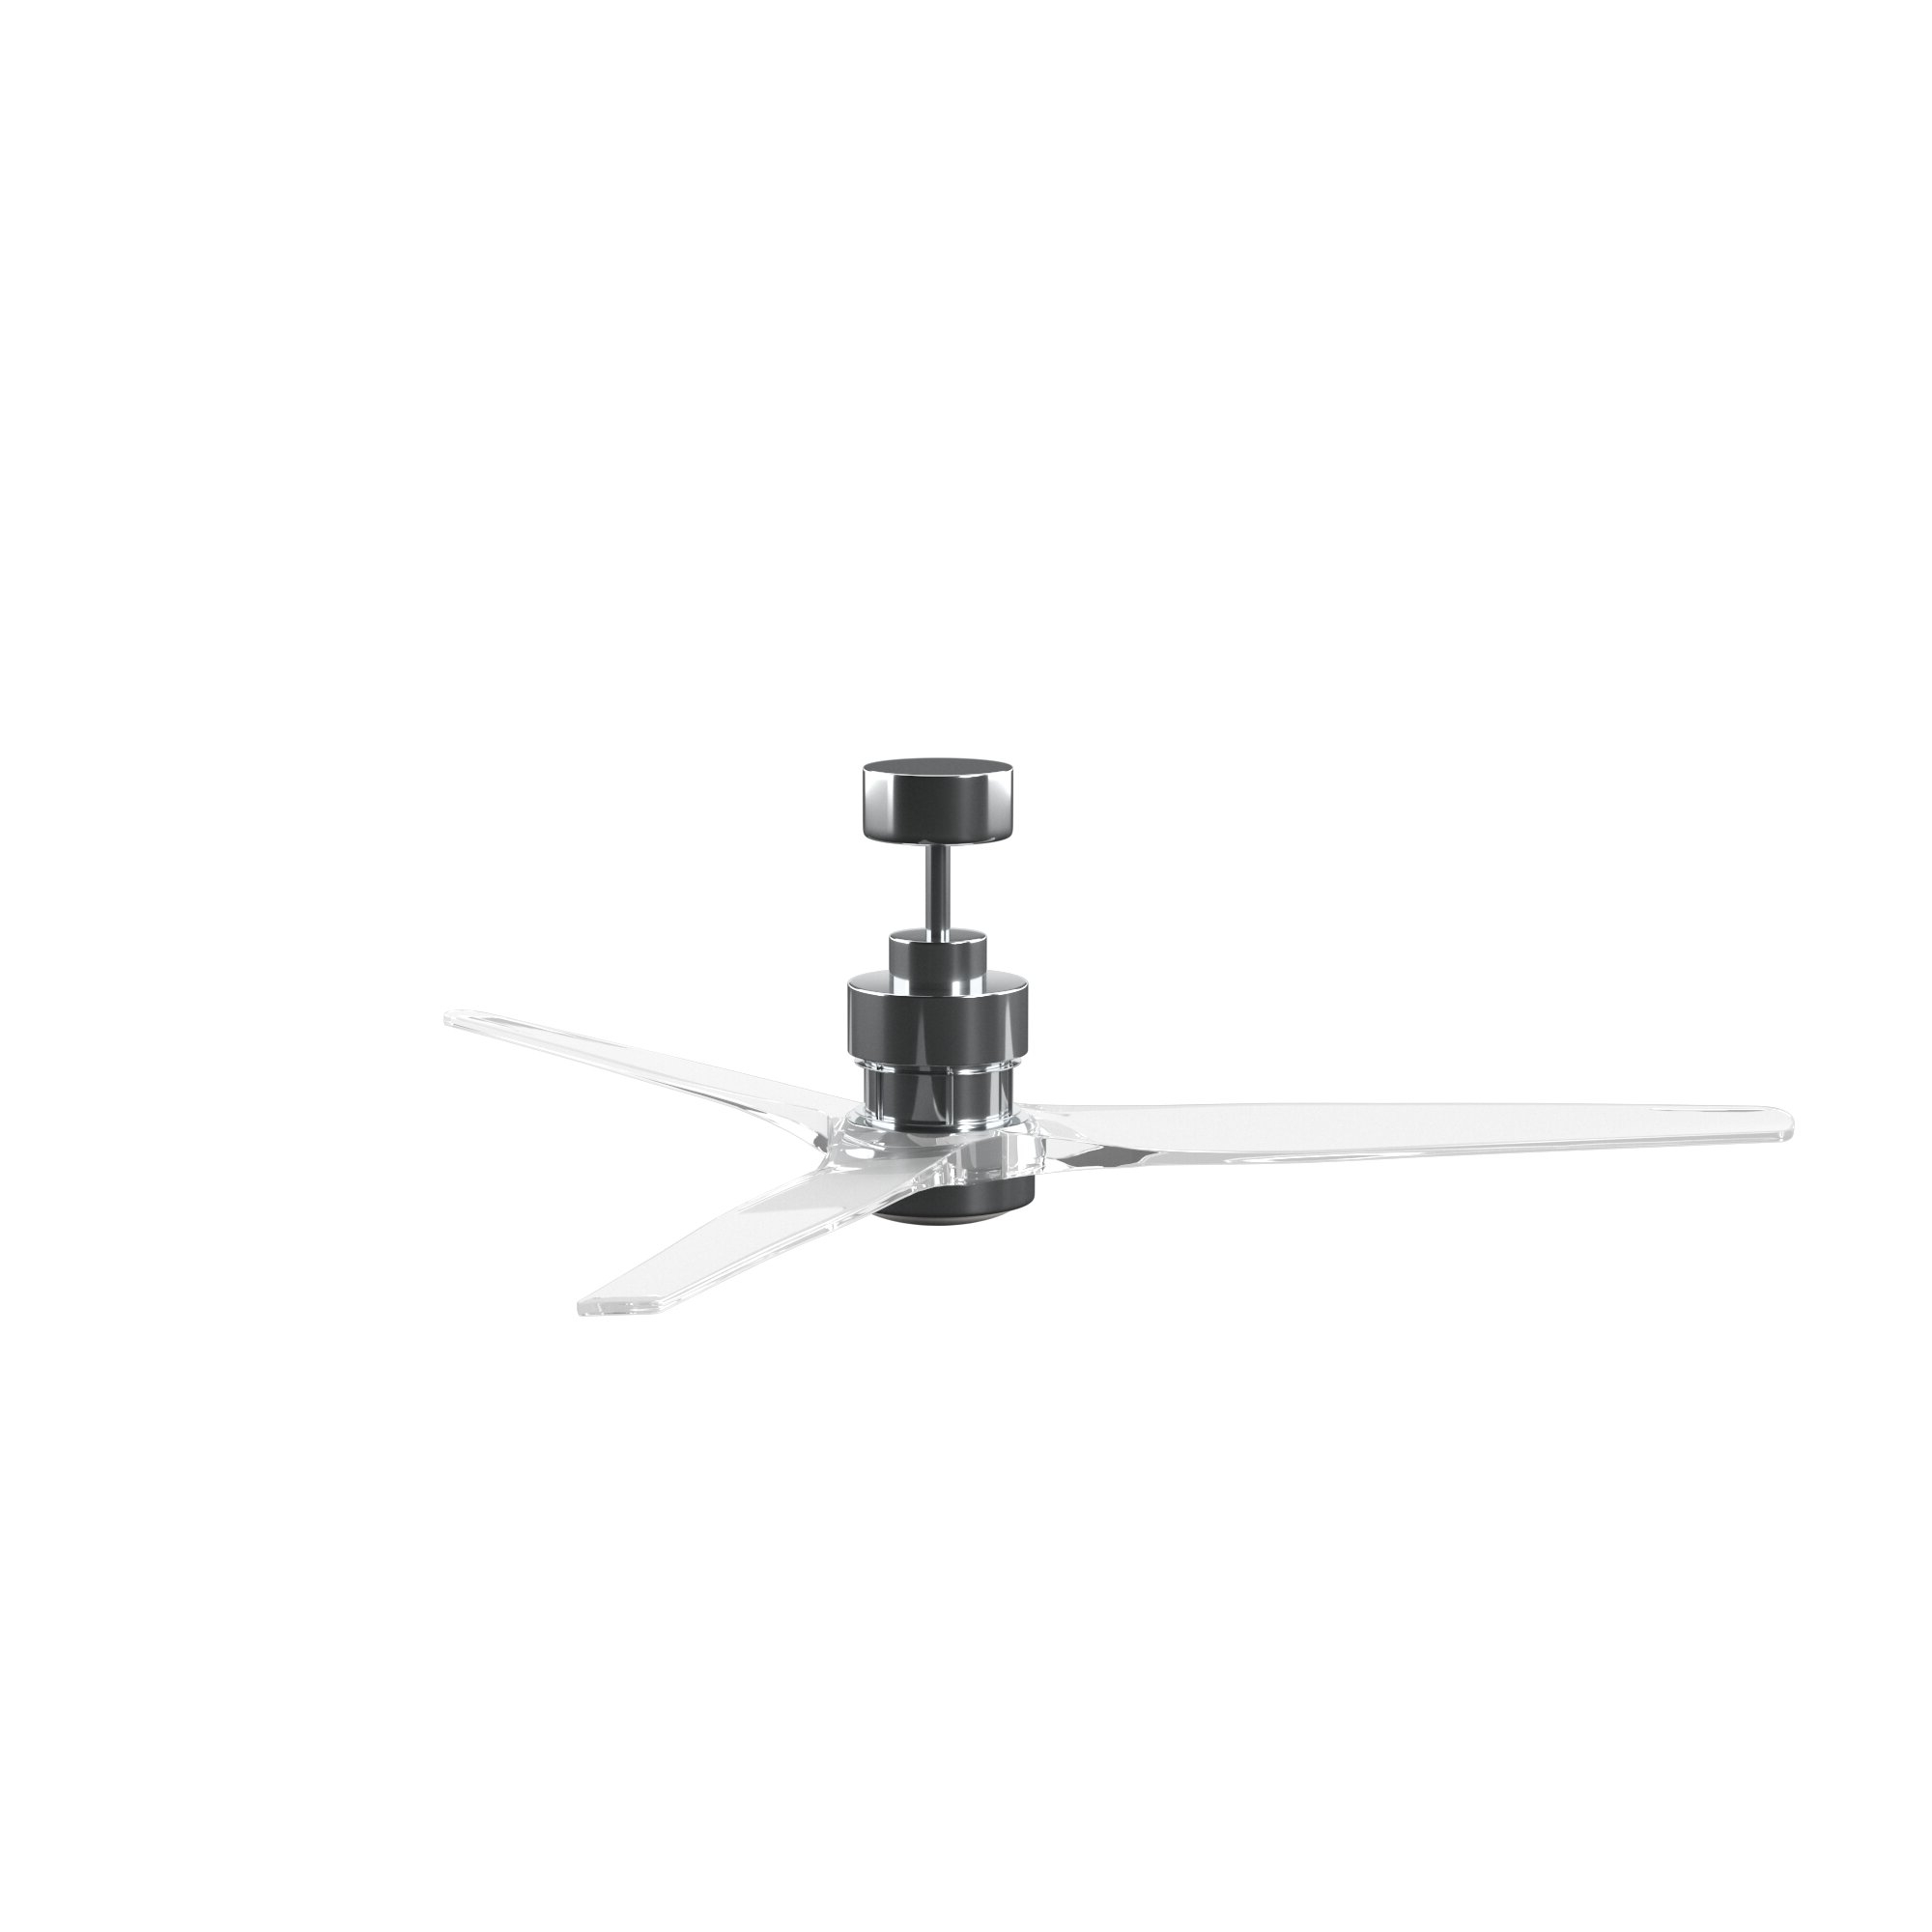 """60"""" Mcdaniels 3 Blade Ceiling Fan With Remote, Light Kit Included Intended For Favorite Corsa 3 Blade Ceiling Fans (View 6 of 20)"""